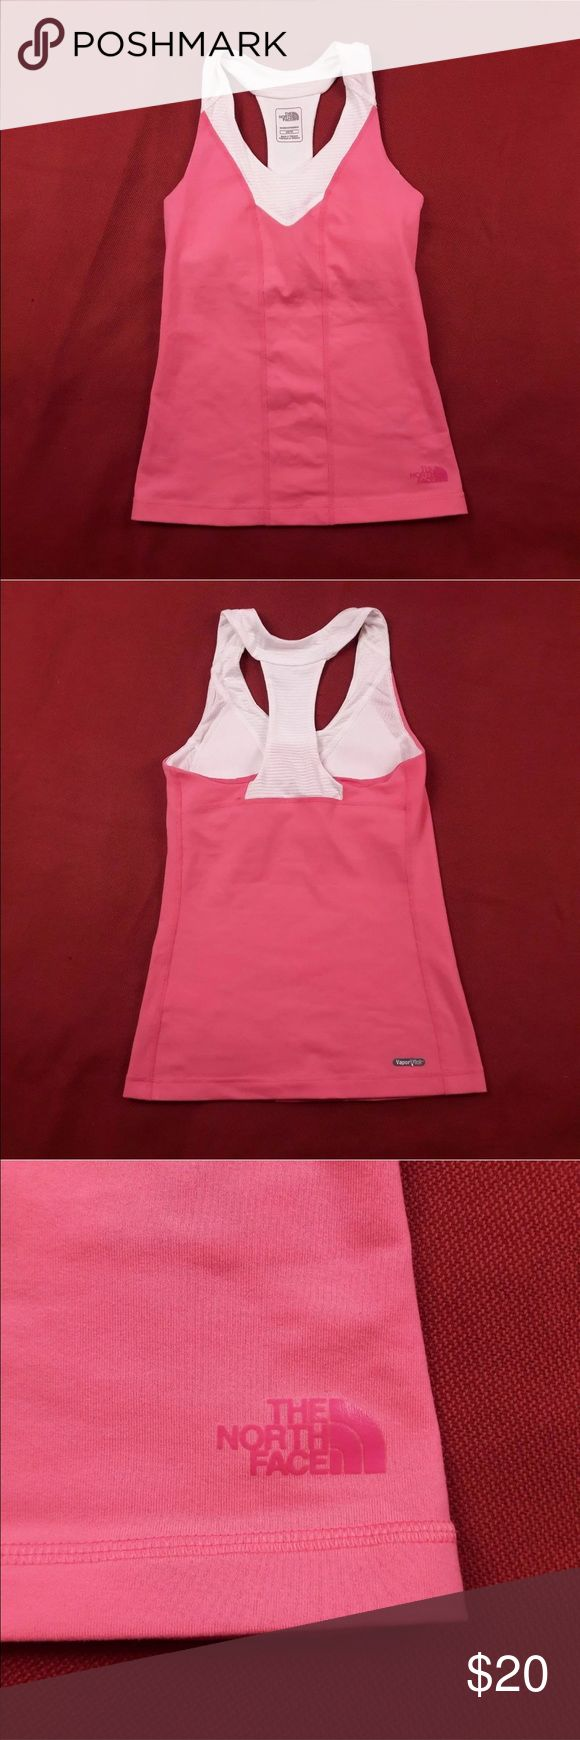 Racerback Tank Top 🌸 Vapor Wick Gently Used Condition! No Flaws.  Size XS.  Please, review pics. Contact me if you have questions. Smoke/Pet free home. North Face Tops Tank Tops